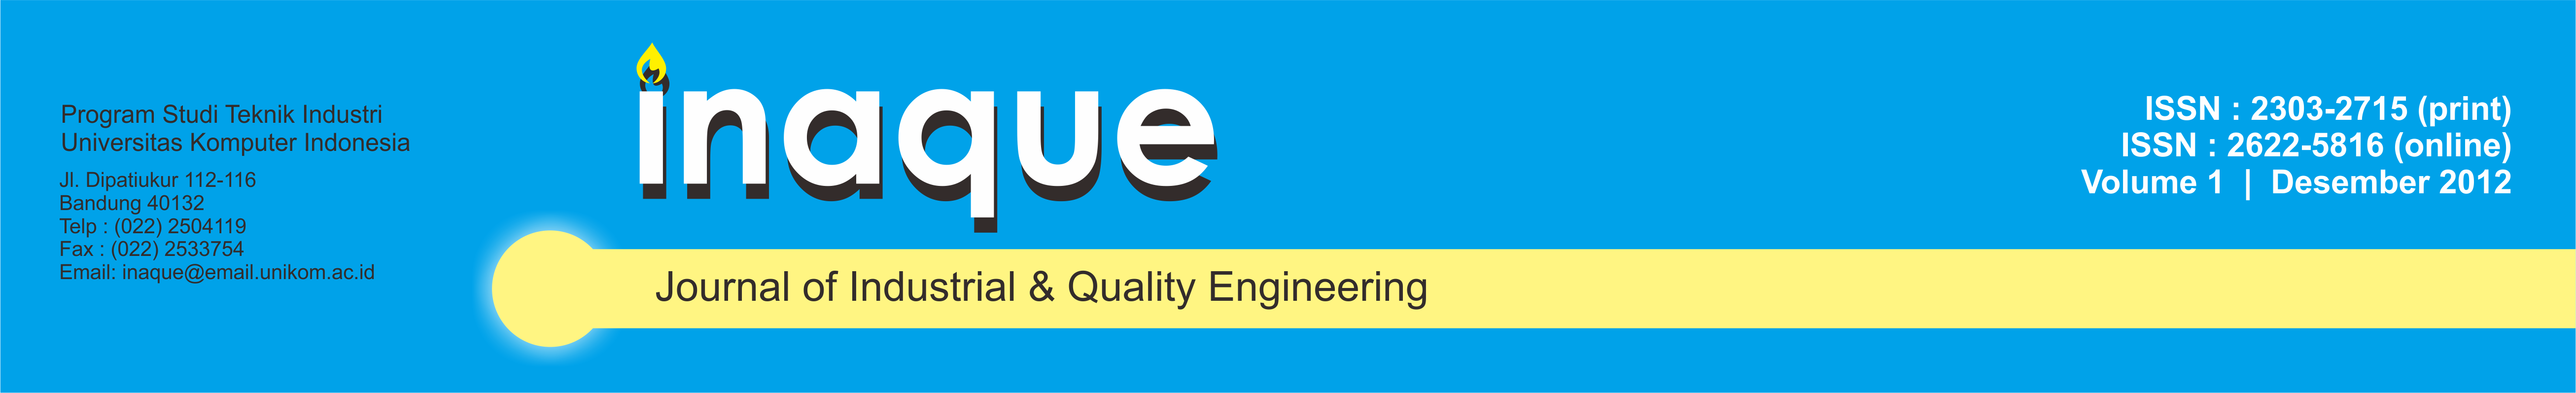 INAQUE : Journal of Industrial & Quality Engineering